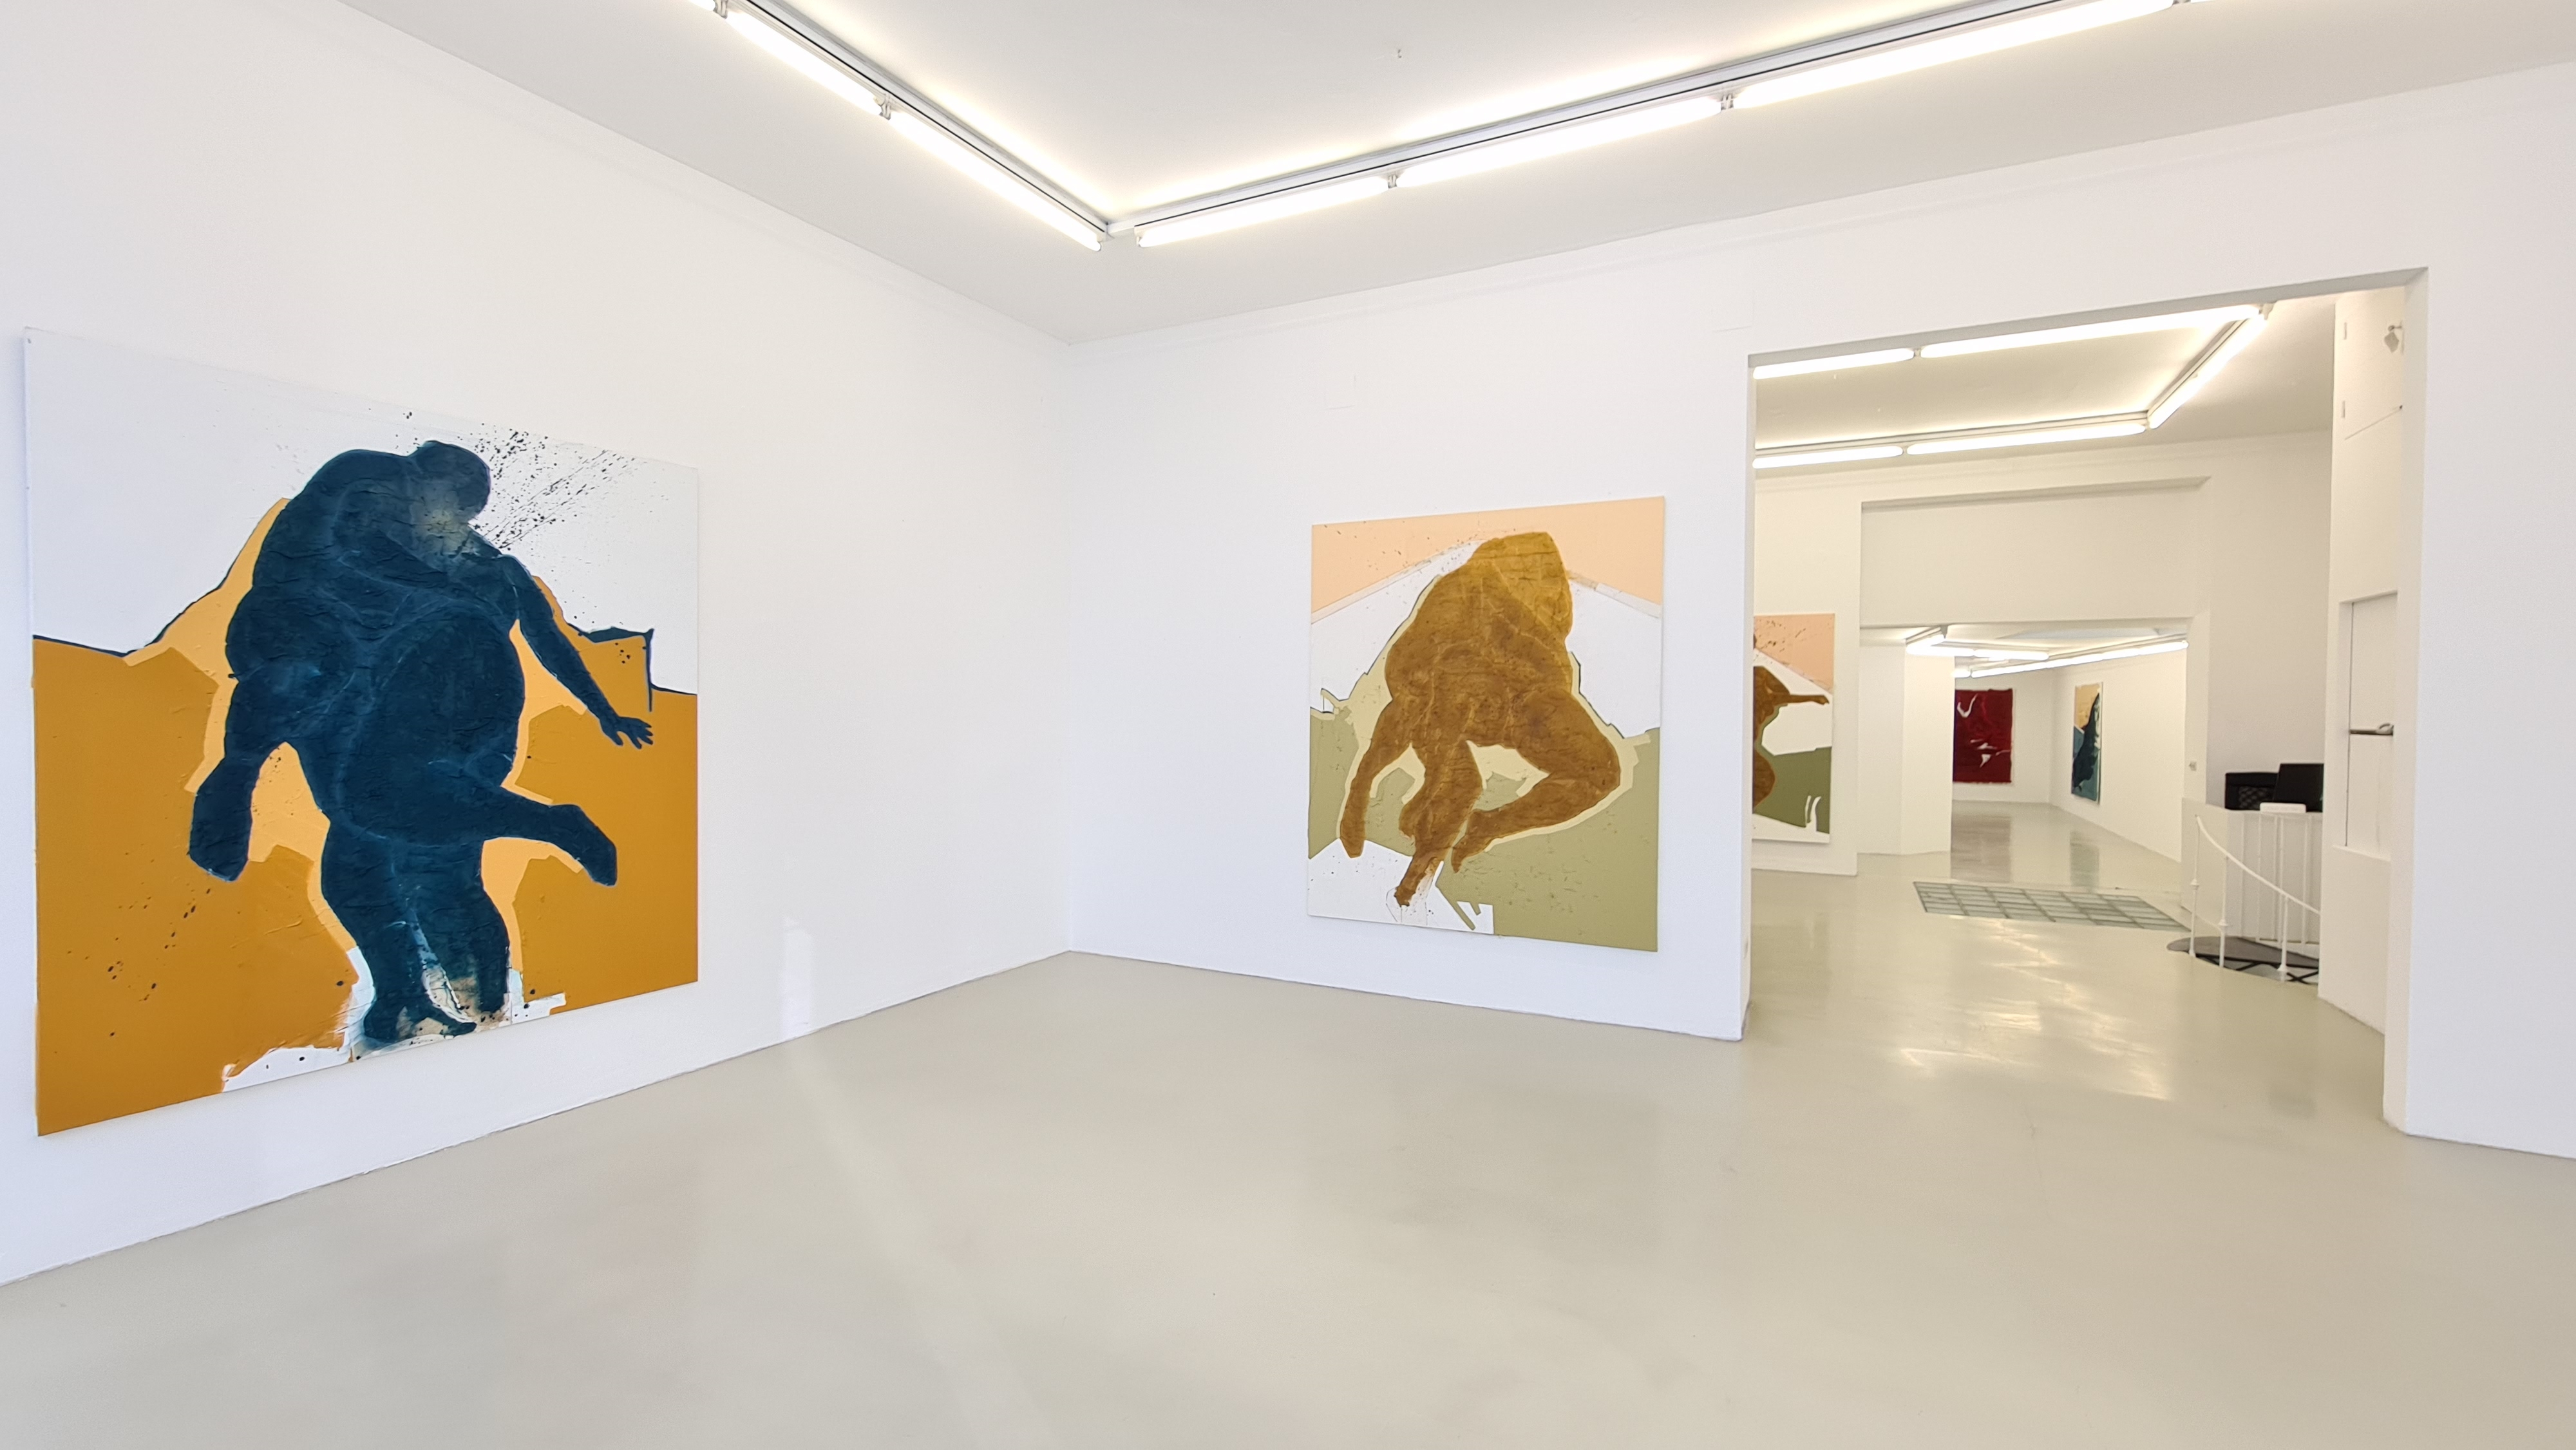 Exhibition View, Courtesy of Lukas Feichtner Galerie and the artist